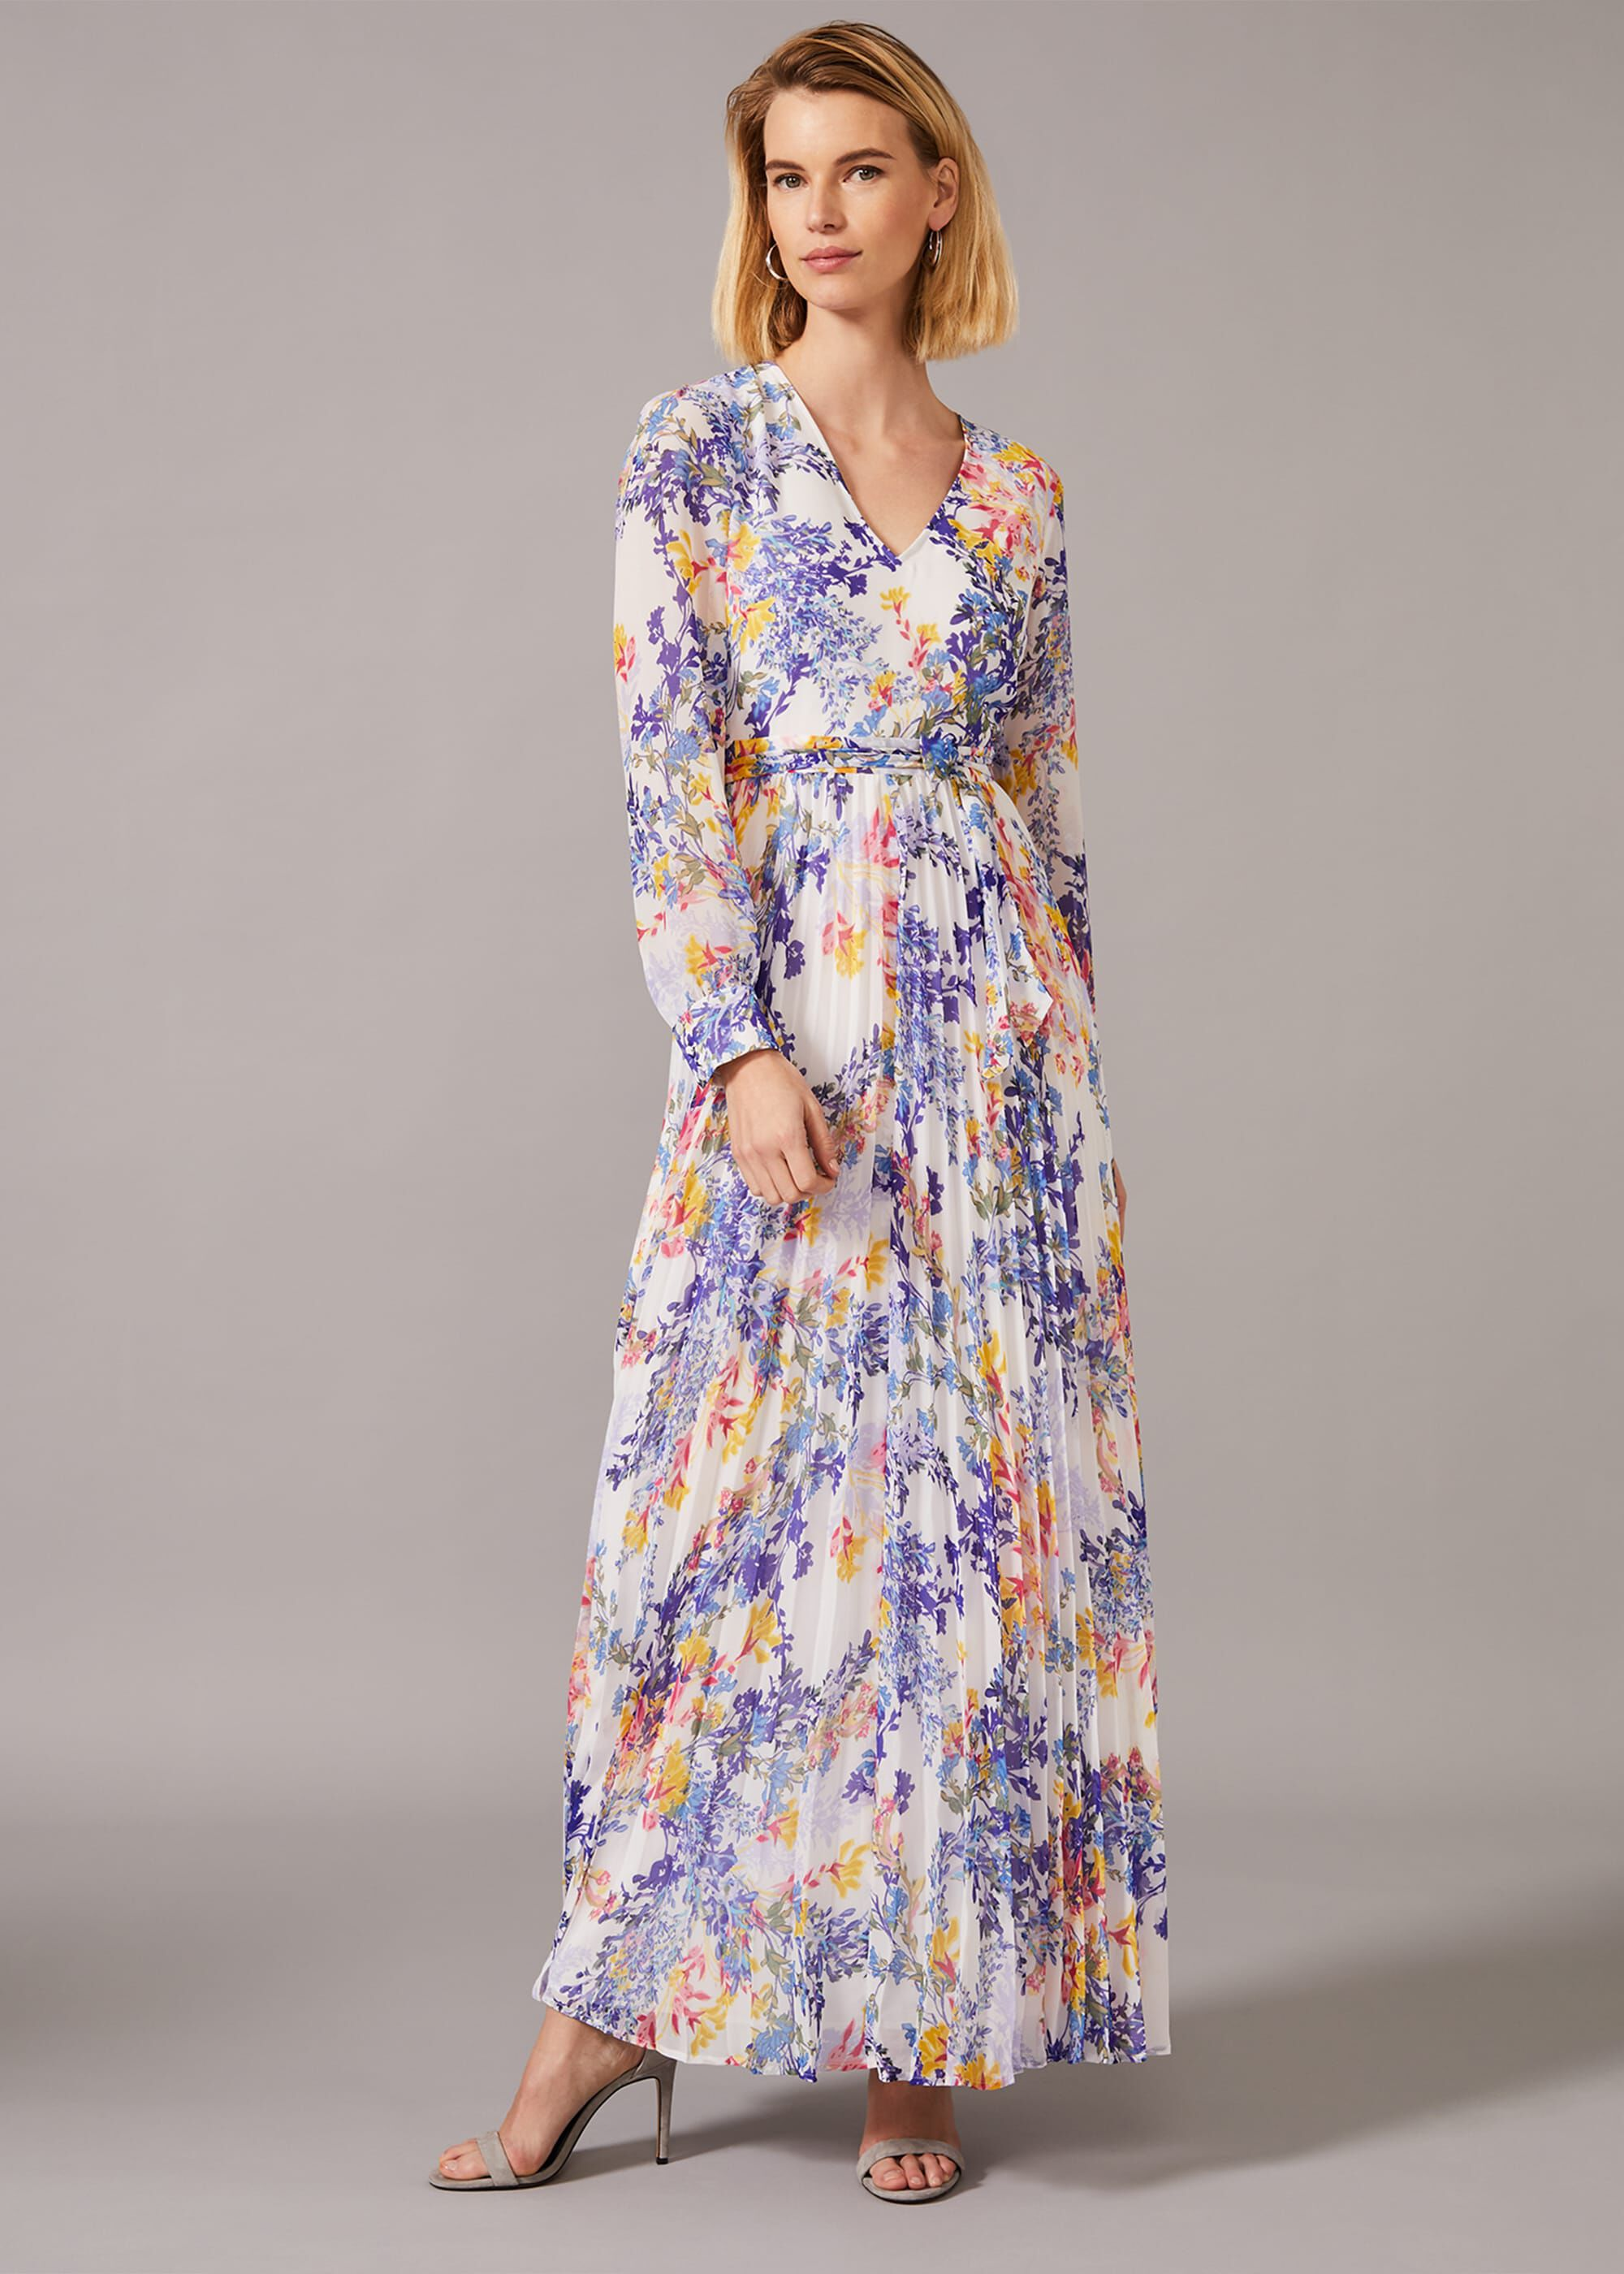 Phase Eight Daryl Pleated Maxi Dress, Purple, Maxi, Occasion Dress